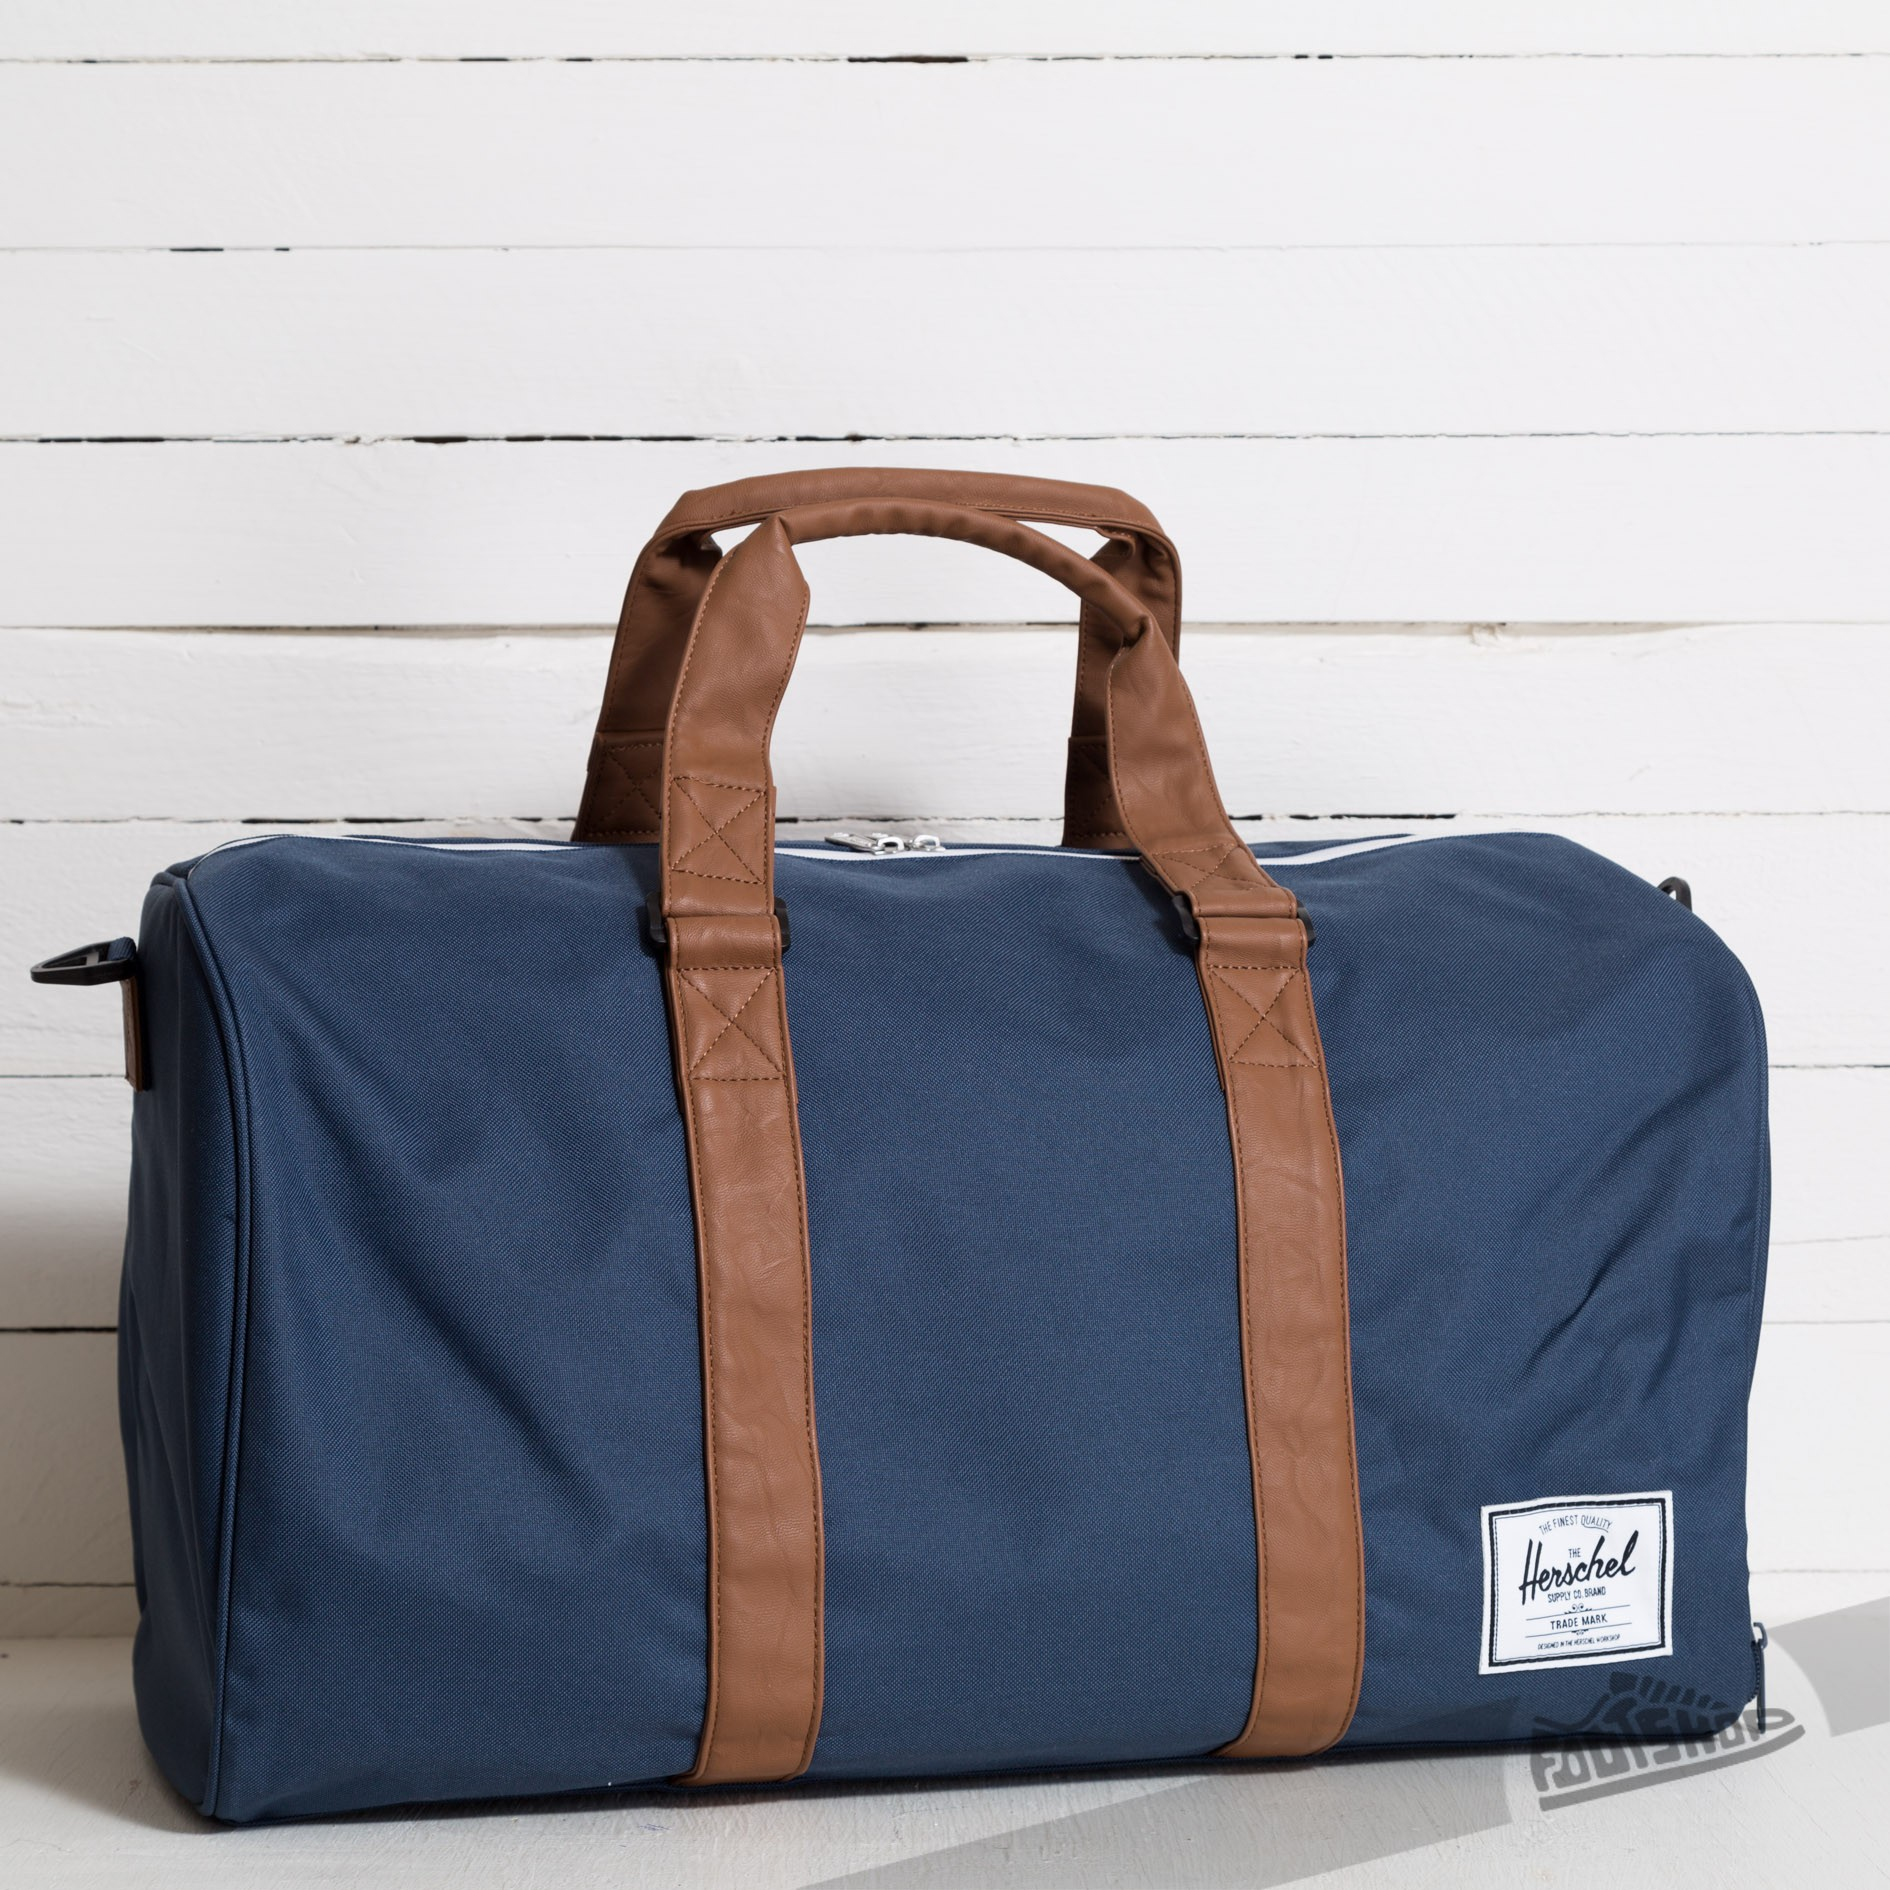 c1a5f1490a Herschel Supply Co. Novel Duffle Navy Tan